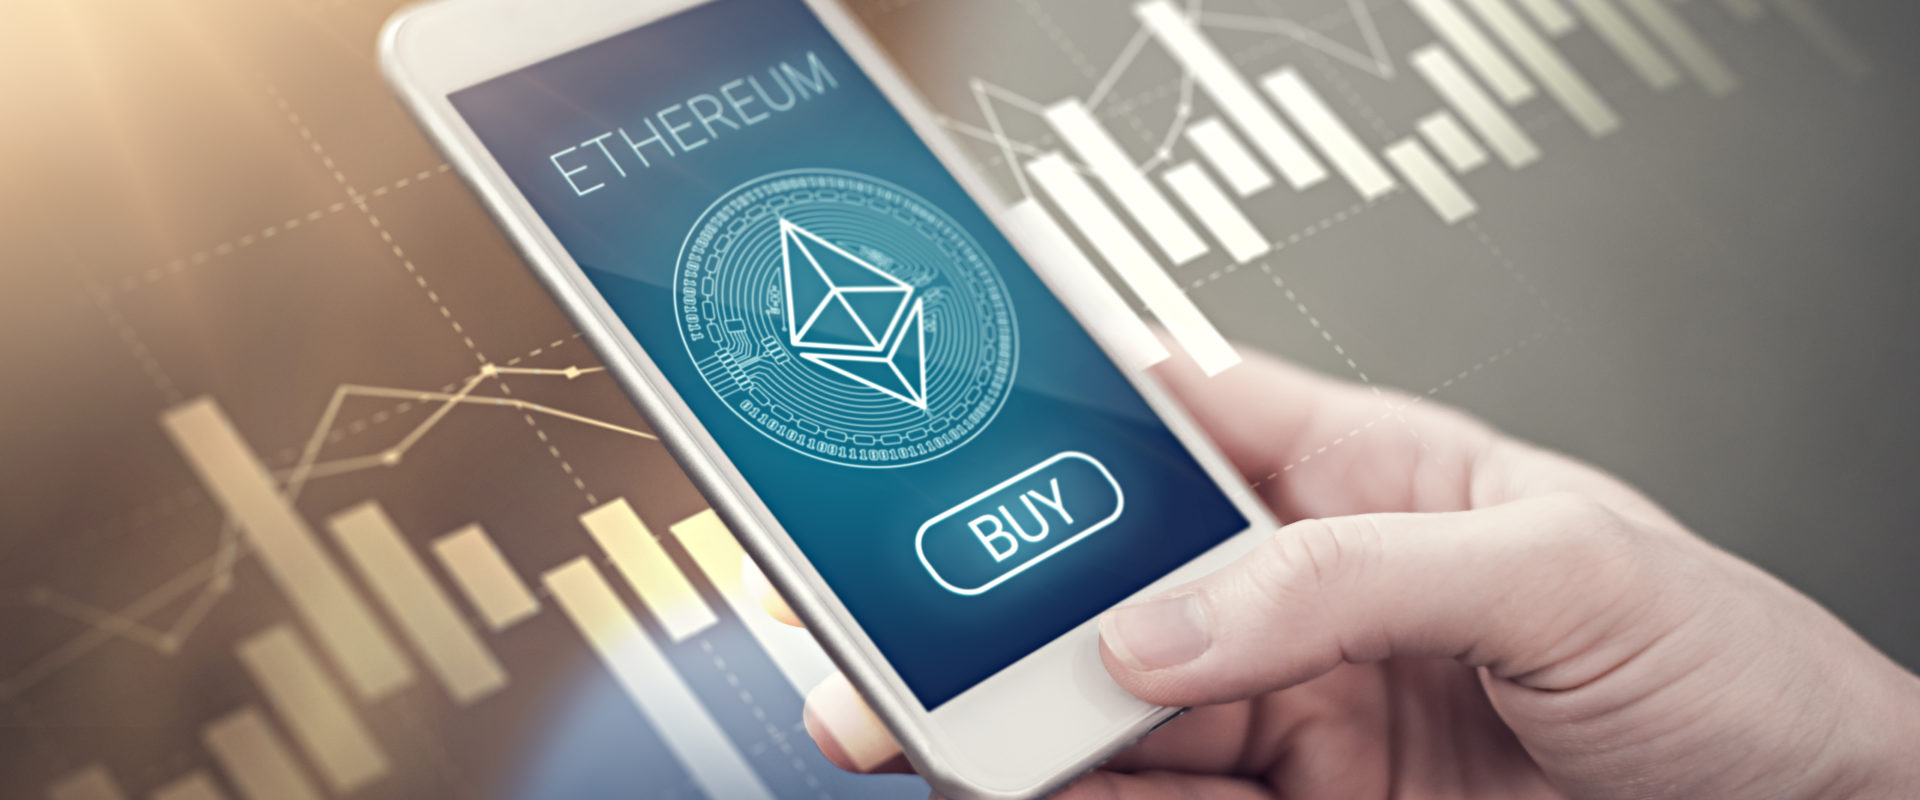 Ethereum Could Almost Double its Price This Year: Analyst